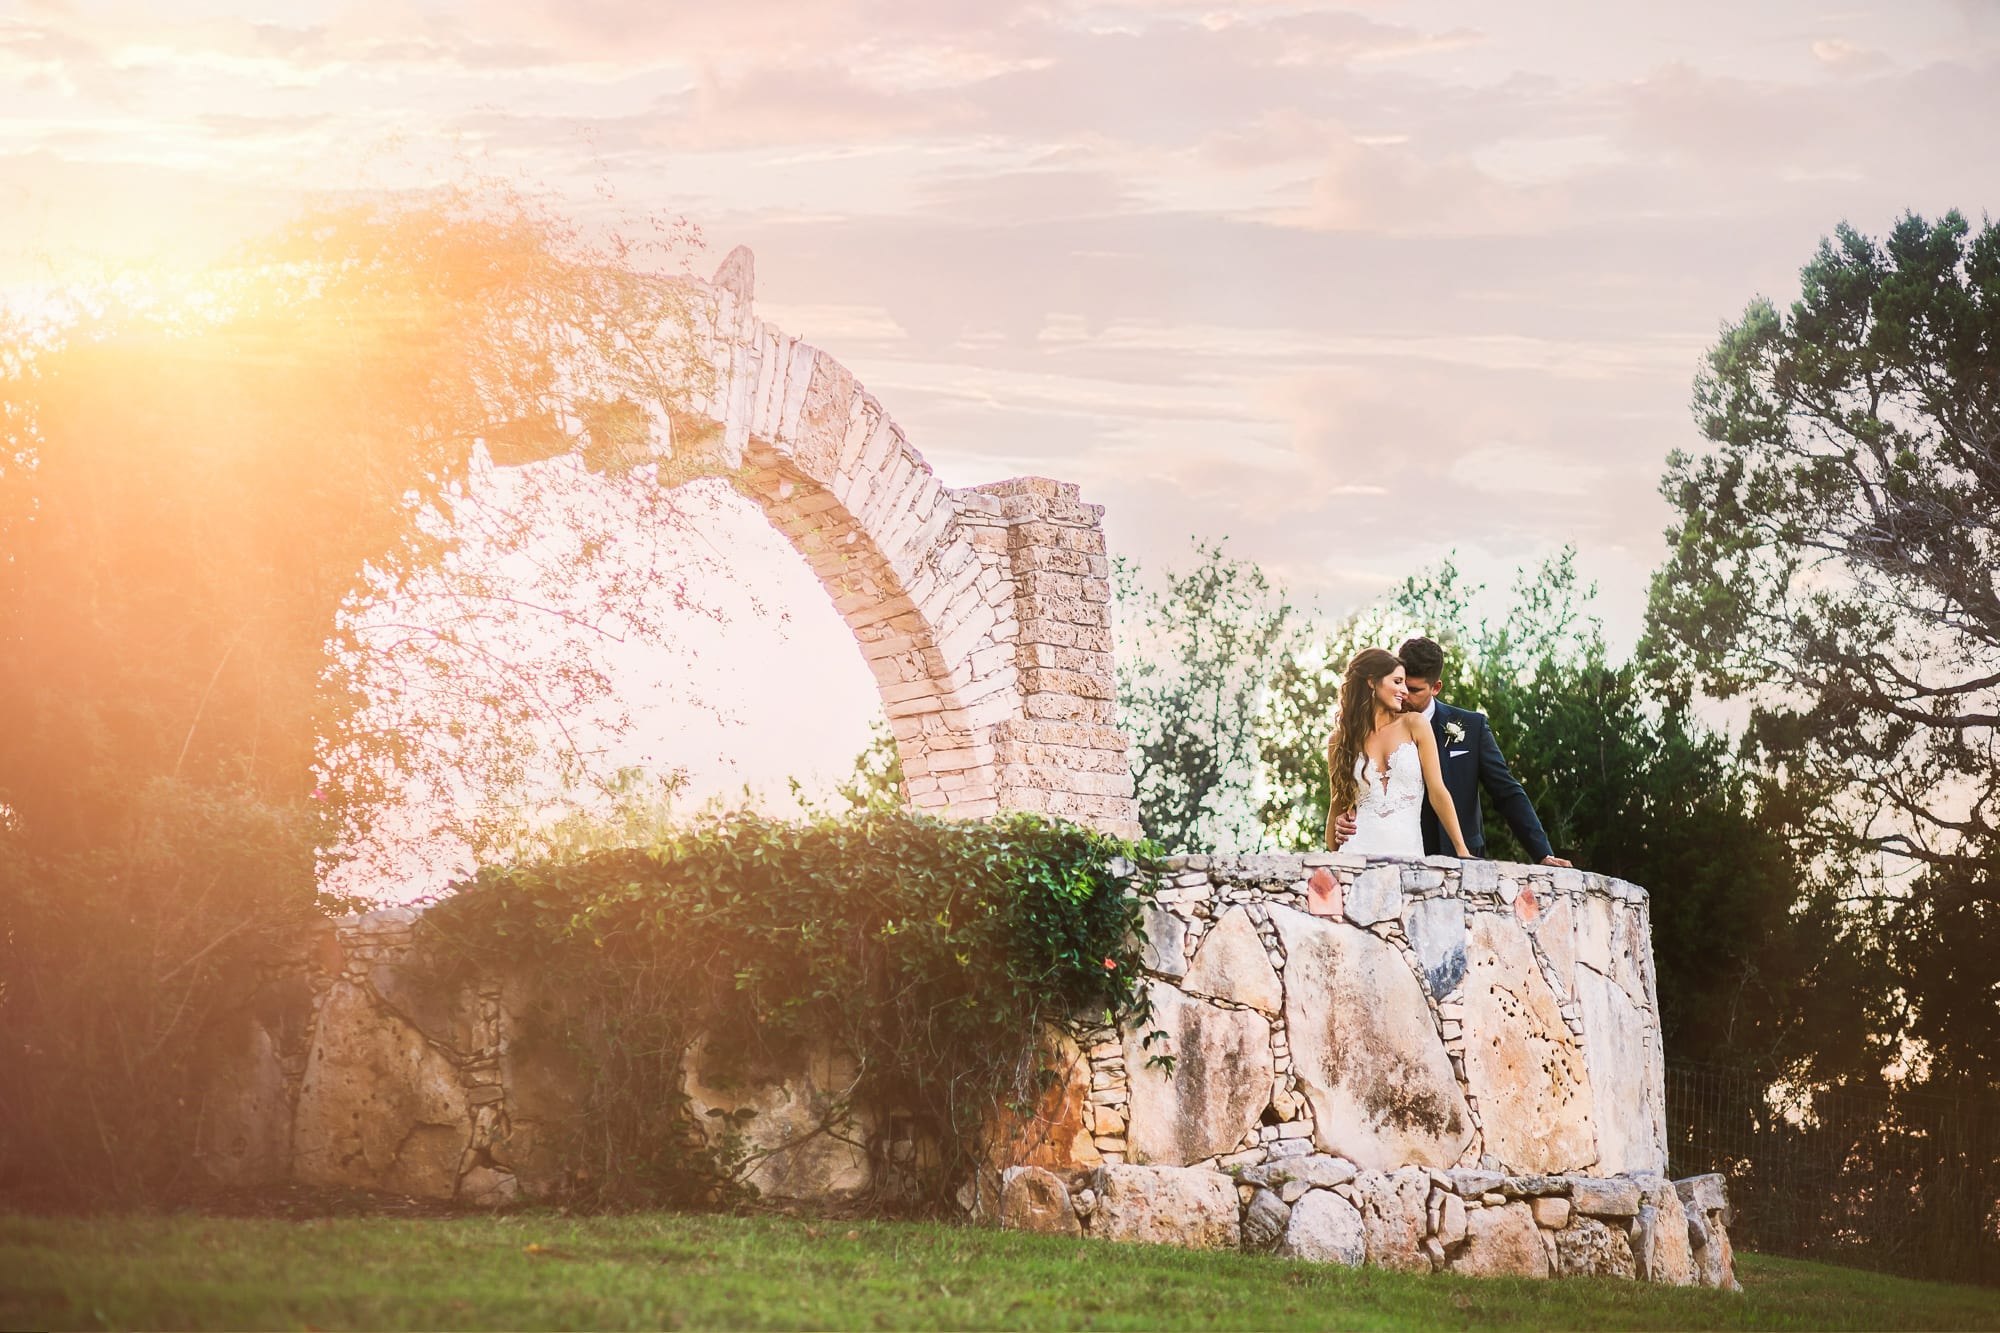 Bride and groom flirt while on edge of hill country view